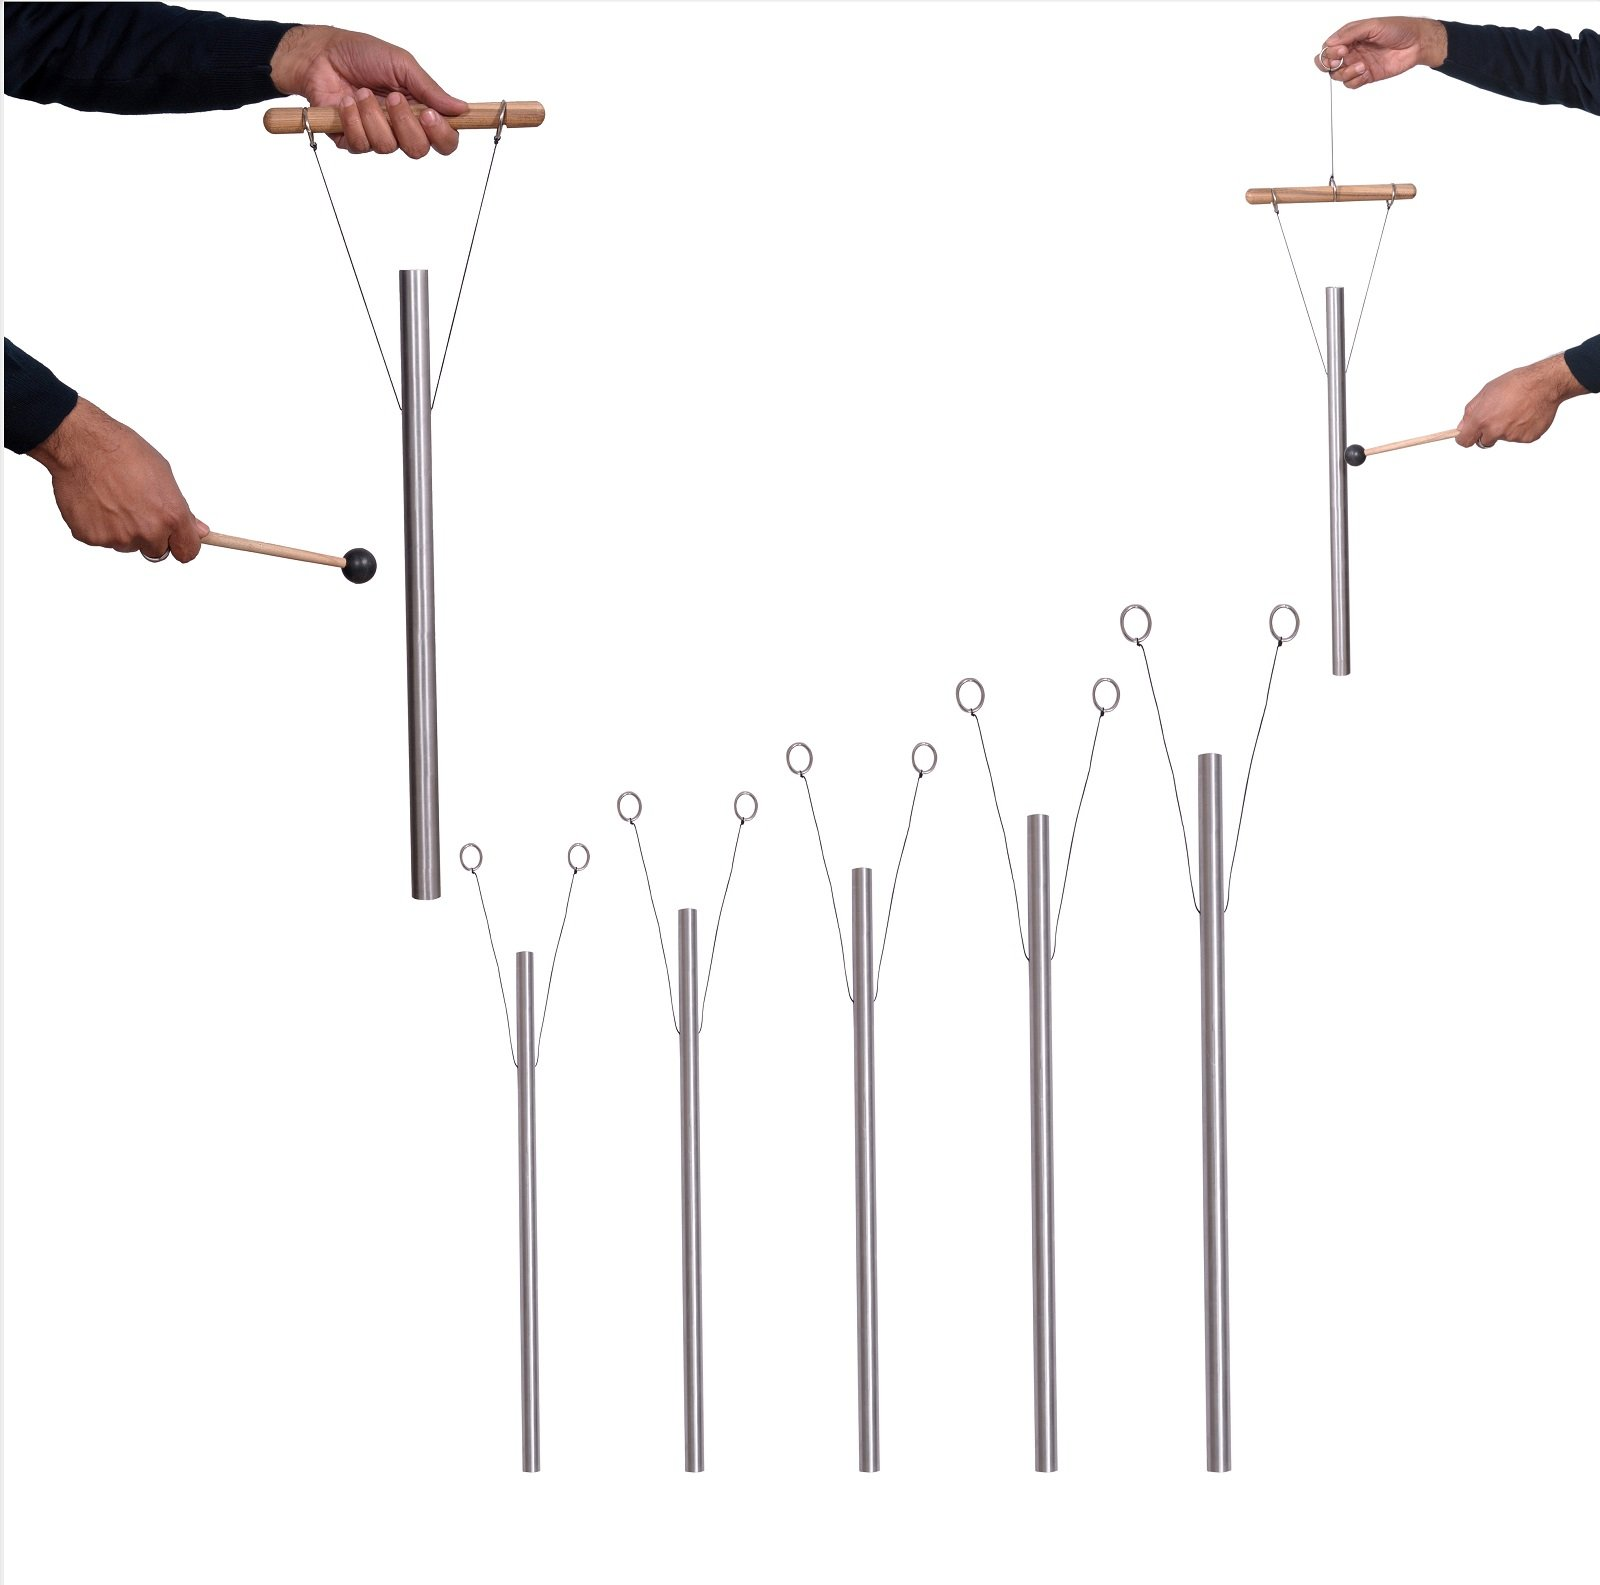 TFS Tuningforkshop 5 Brain Healing Tuned Pipes Louder Than Tuning Fork with Mallet,Hand Stand & Free Shipping